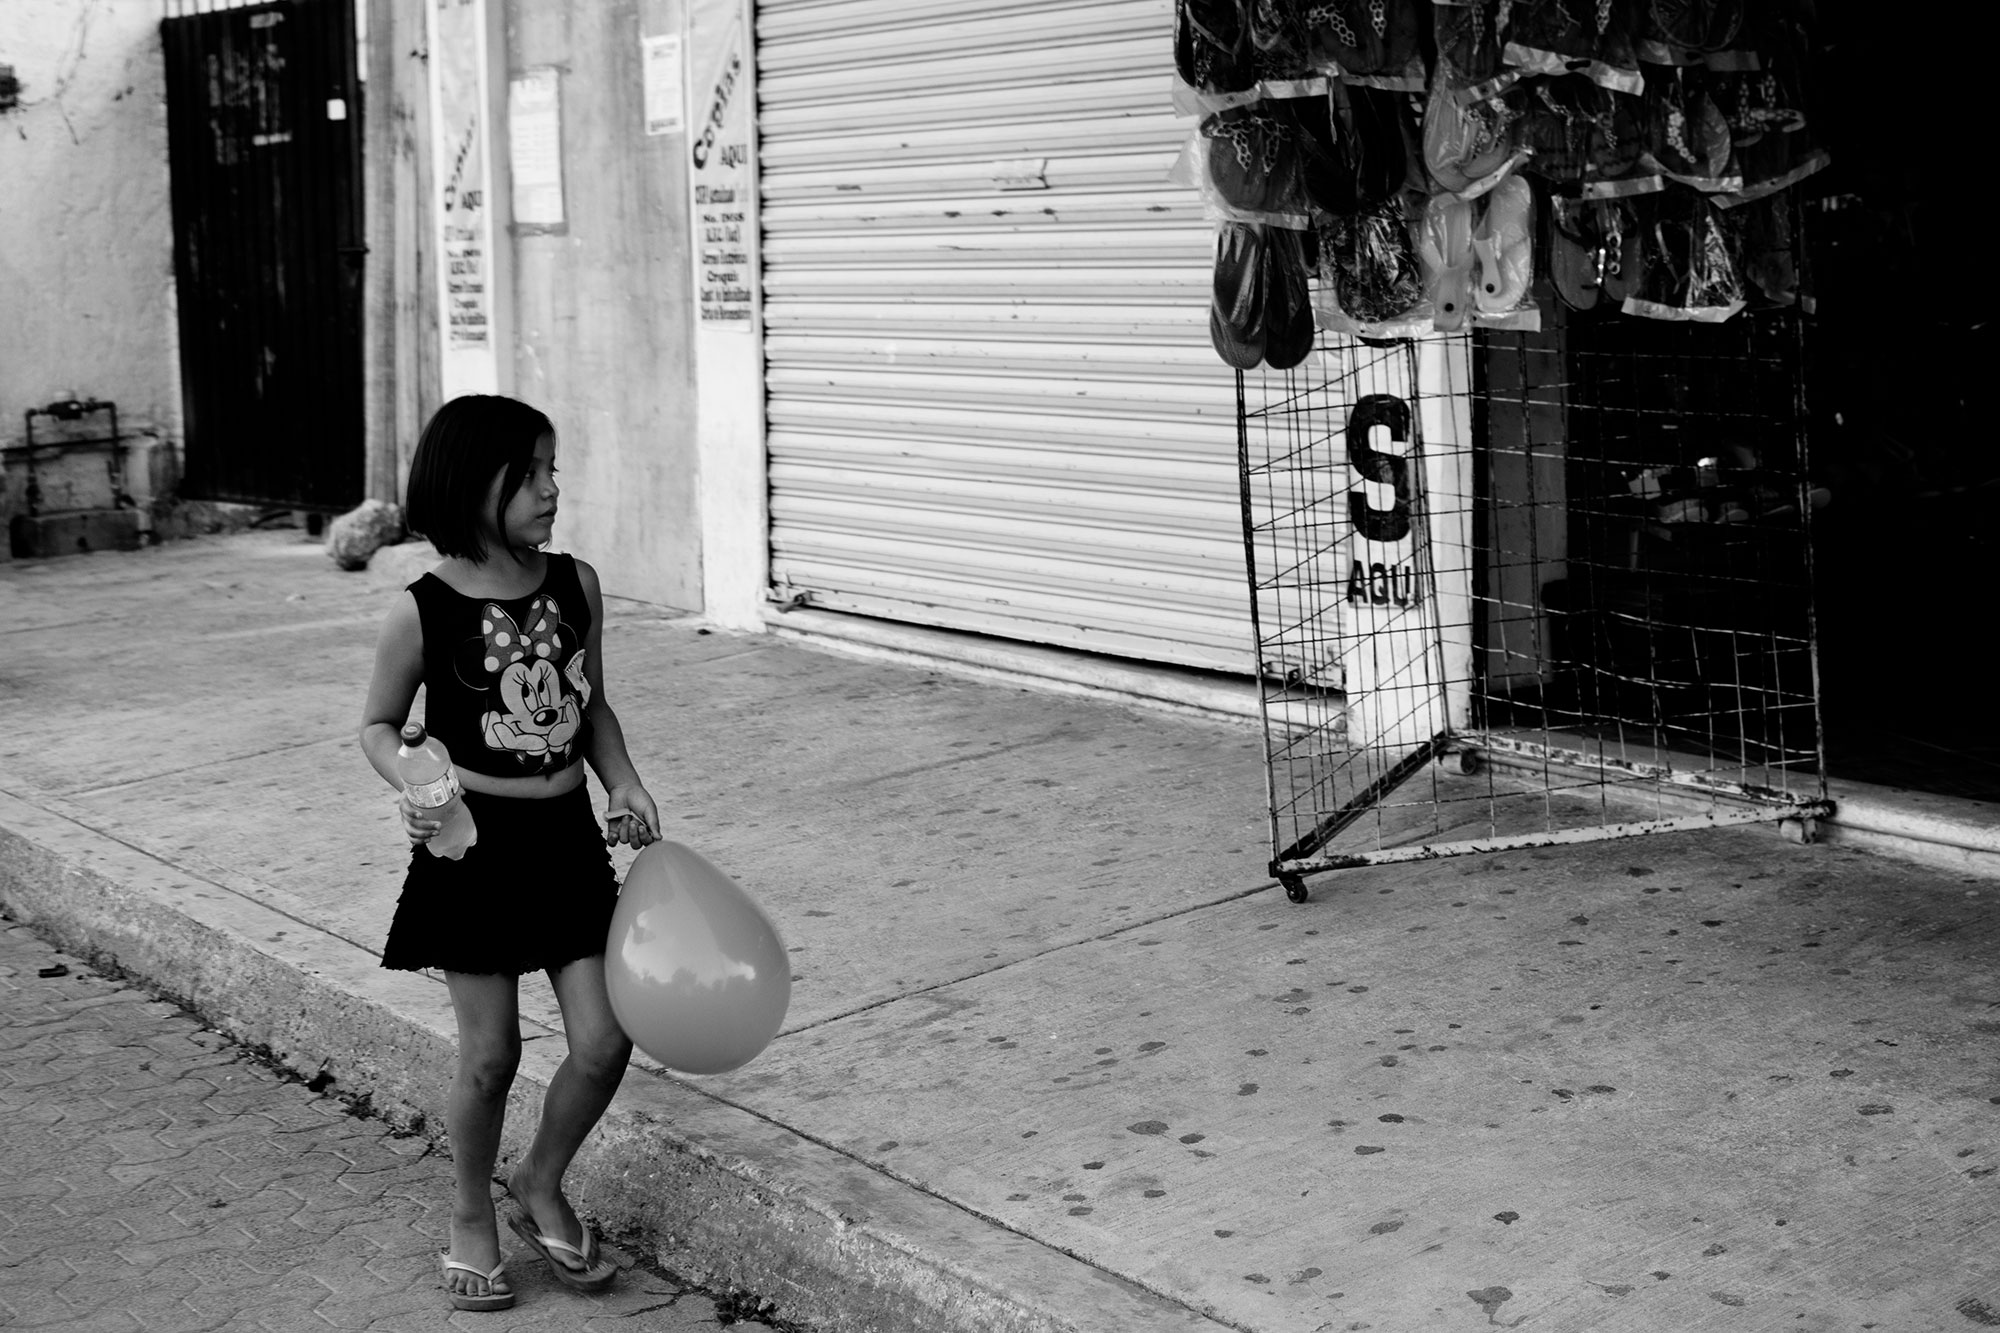 From the series ' La Lucha Sigue ', Mexico City, 2017.